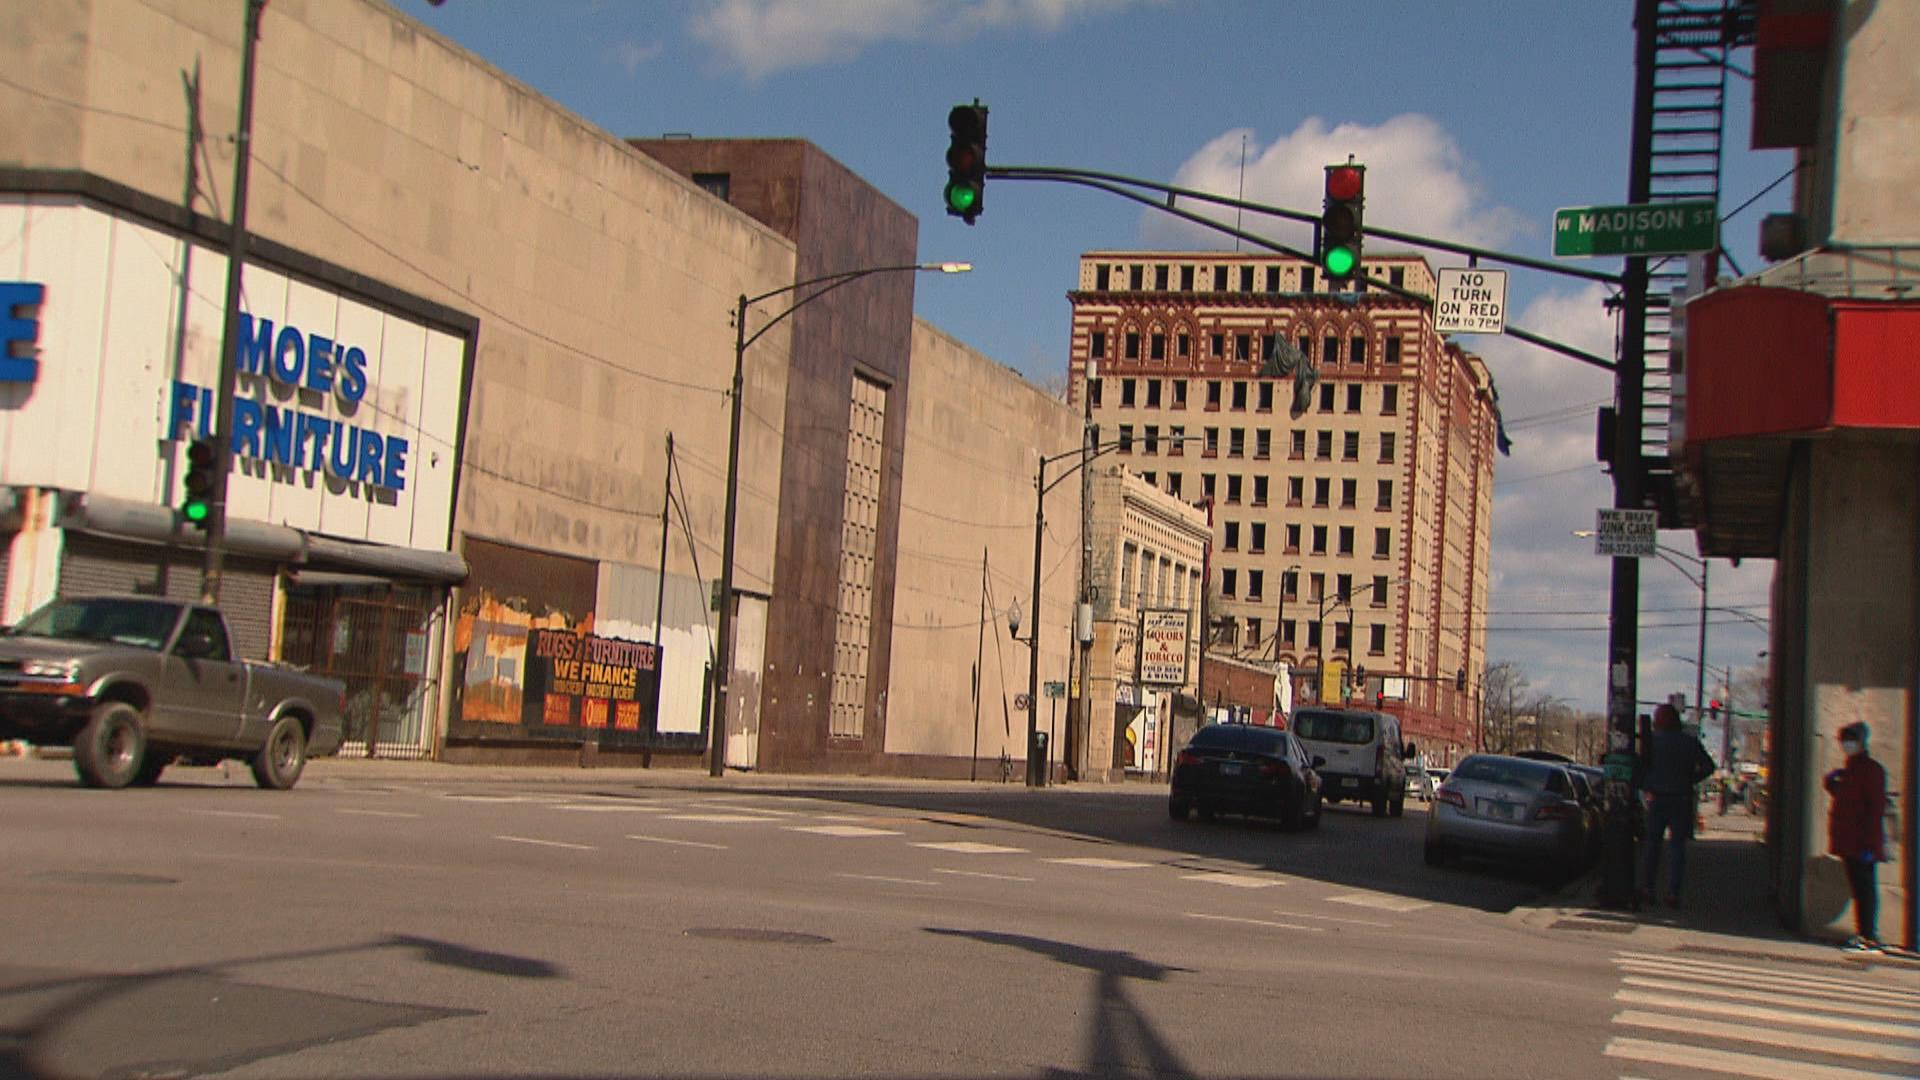 The intersection of Madison Street and Pulaski Road in Chicago. (WTTW News)